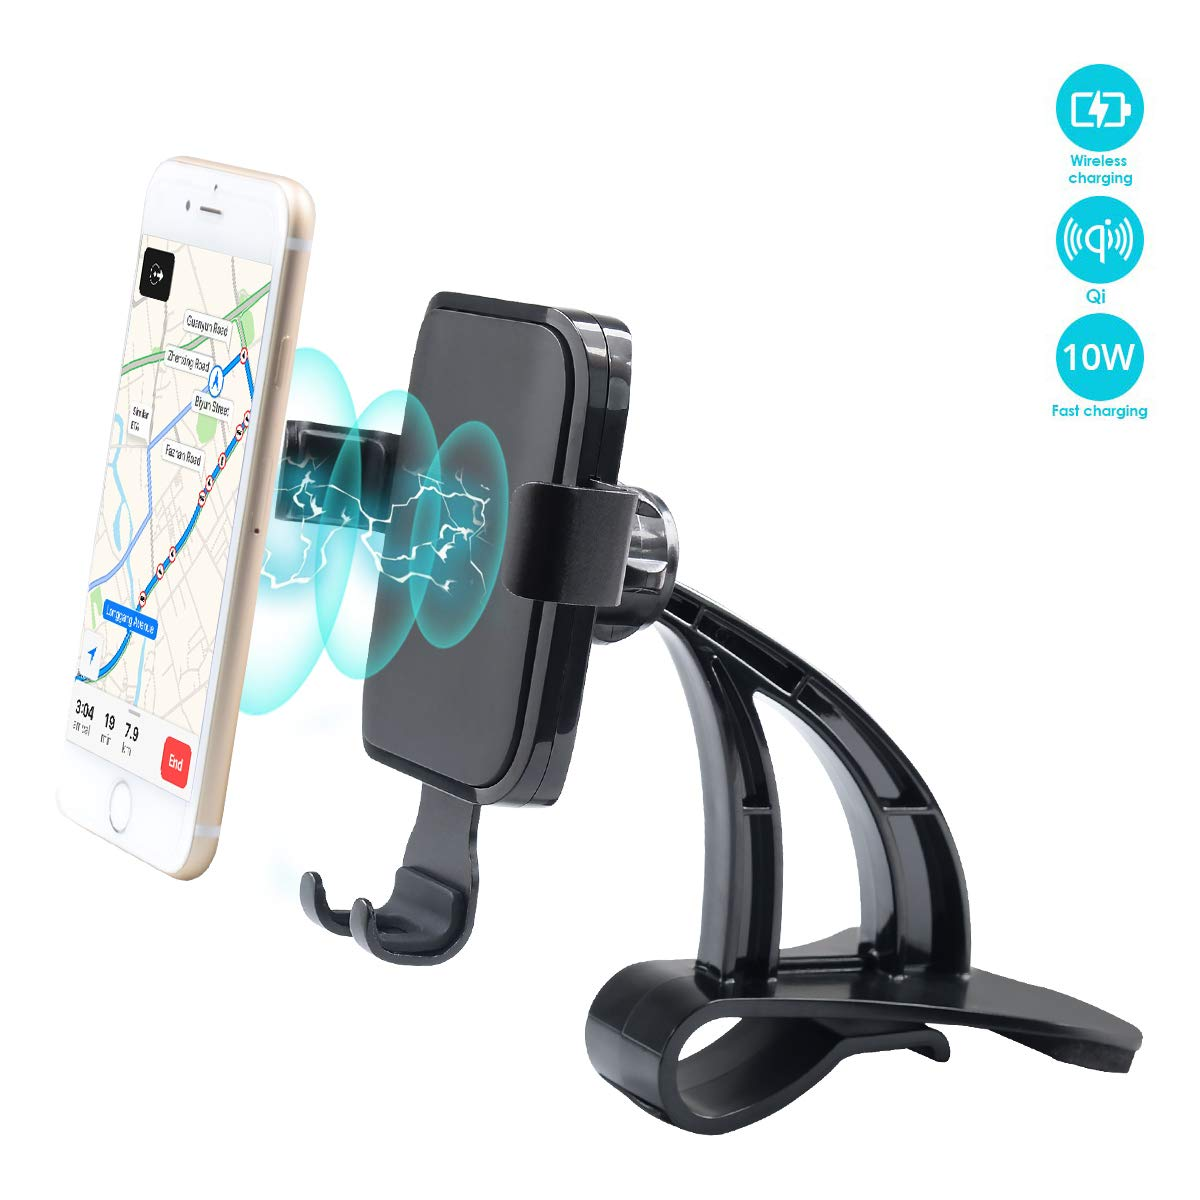 WJM Wireless Charging Cell Phone Stand for Tesla Model 3 Wireless Charger Car Mount Gravity Mobile Holder with Stable Clip Base Compatible with All Smart Phones up to 6.5''